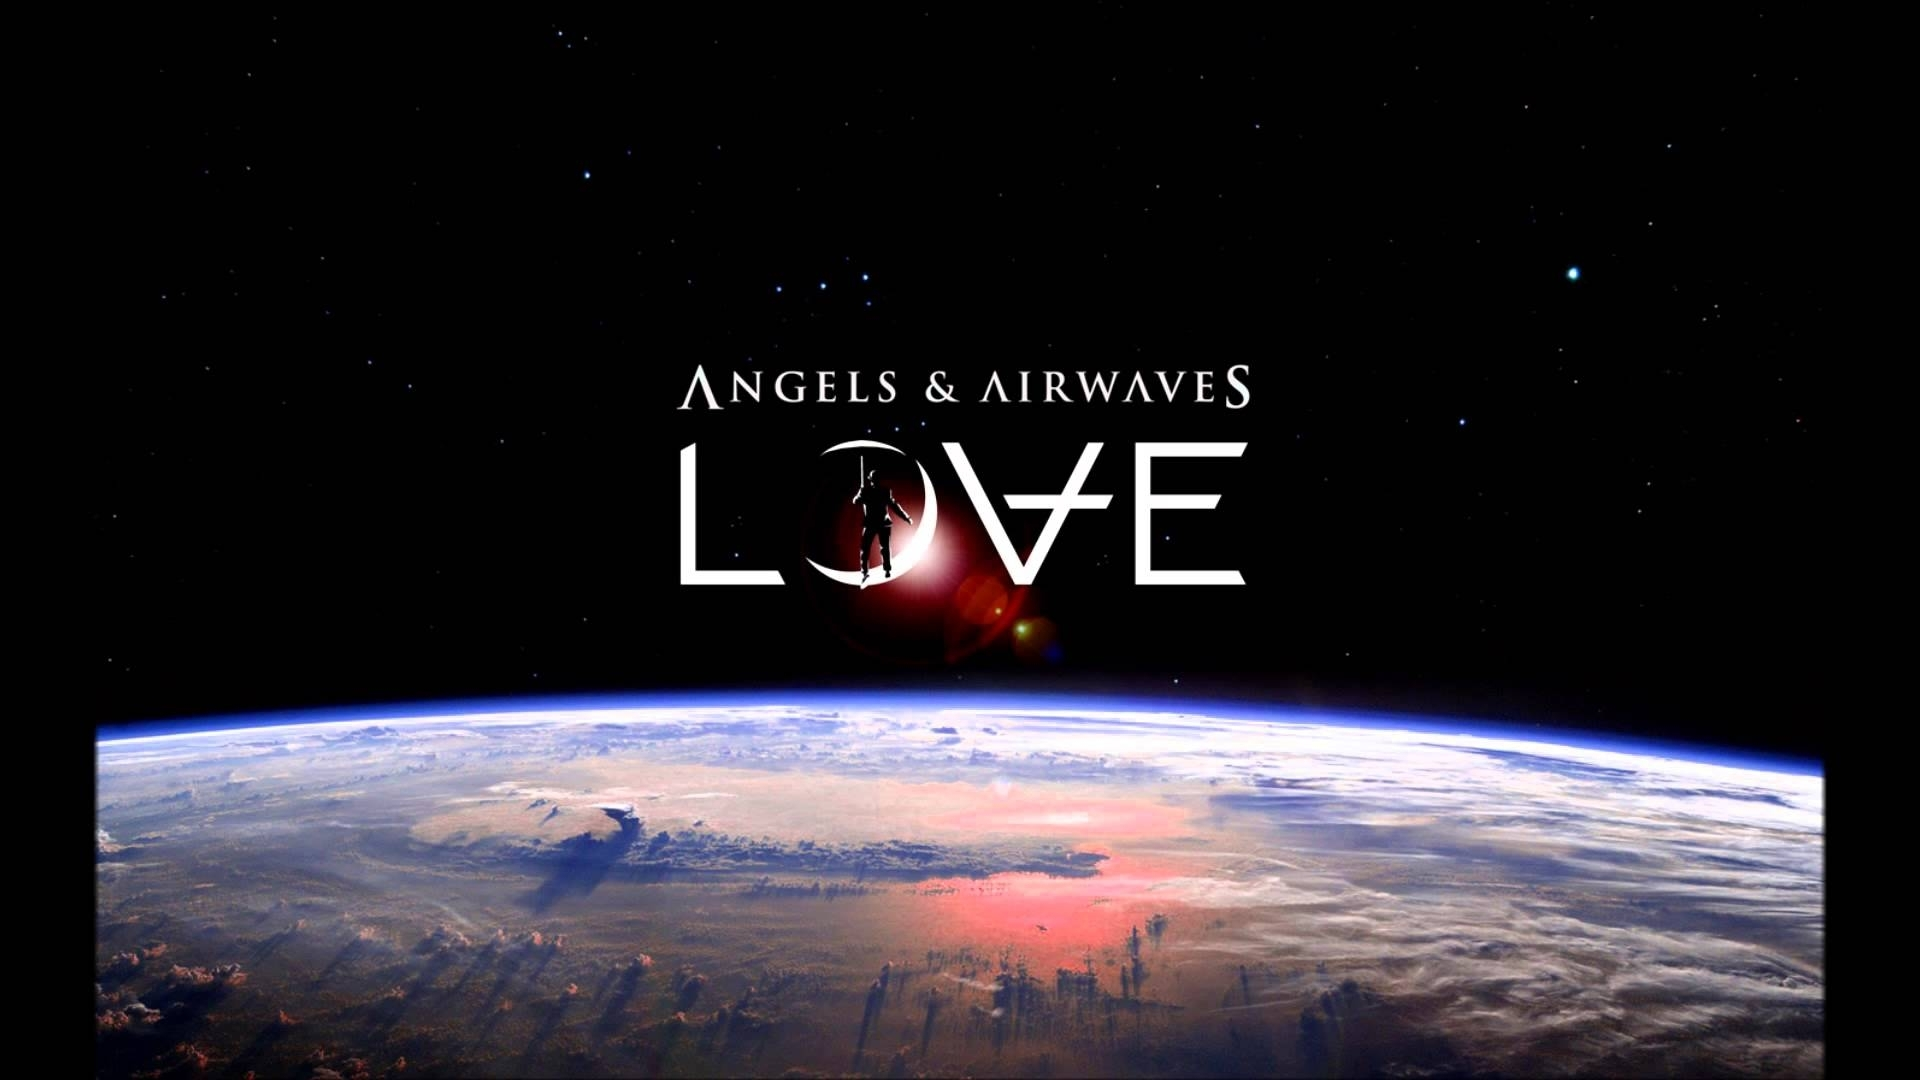 angels & airwaves wallpapers - wallpaper cave